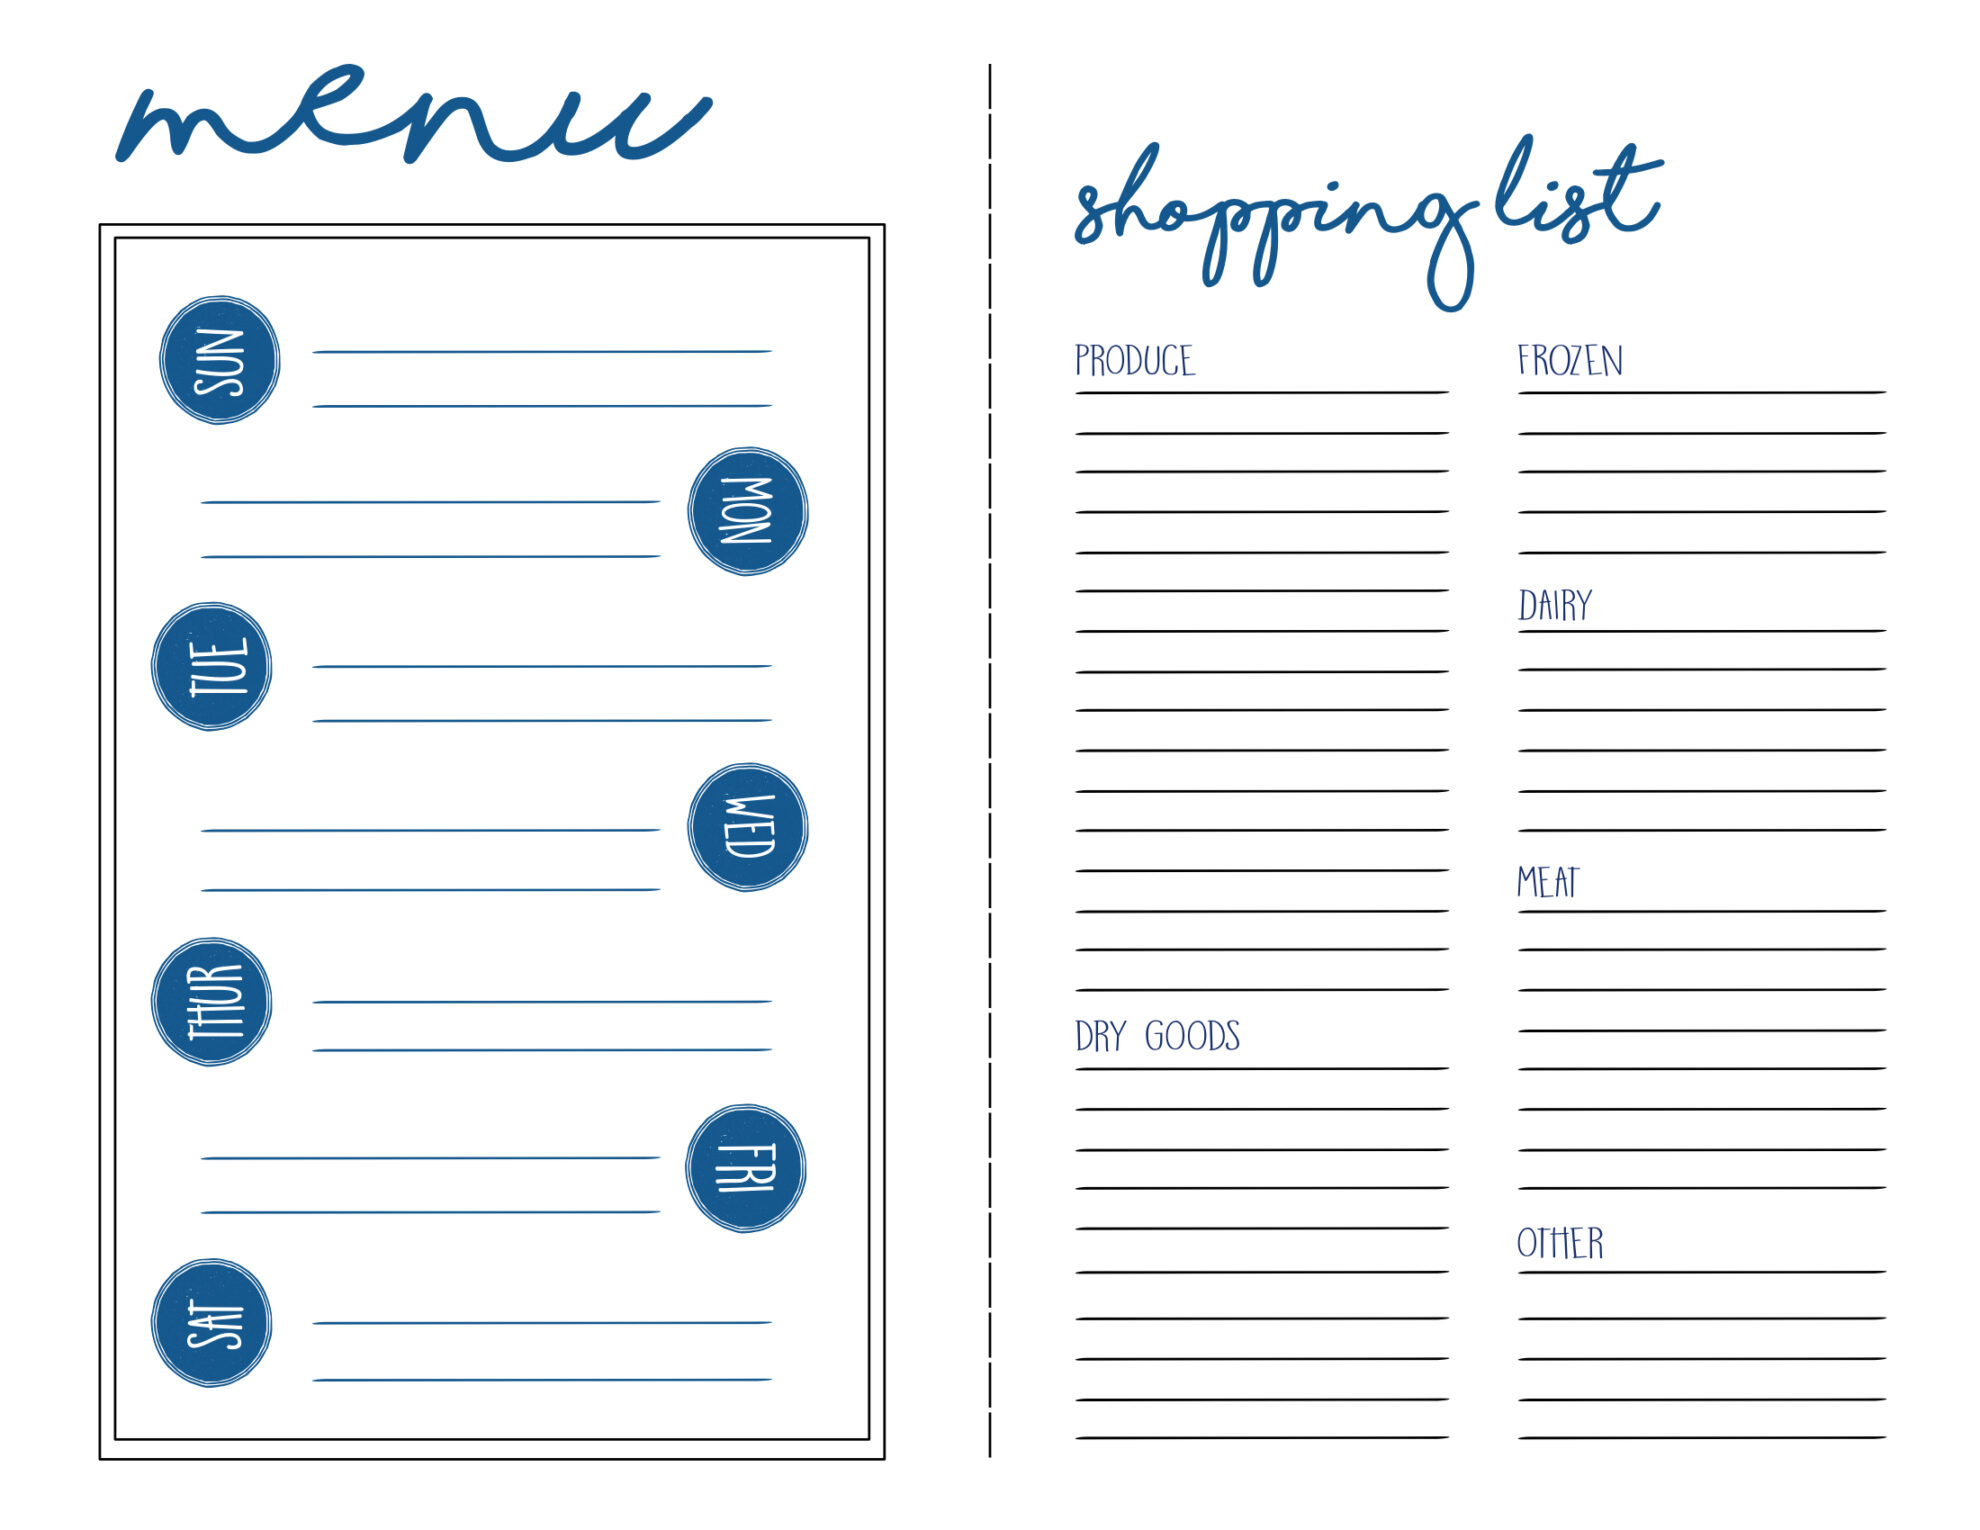 photograph about Menu Planning Printable called Menu Application + Searching Record Free of charge Printable - Paper Path Style and design